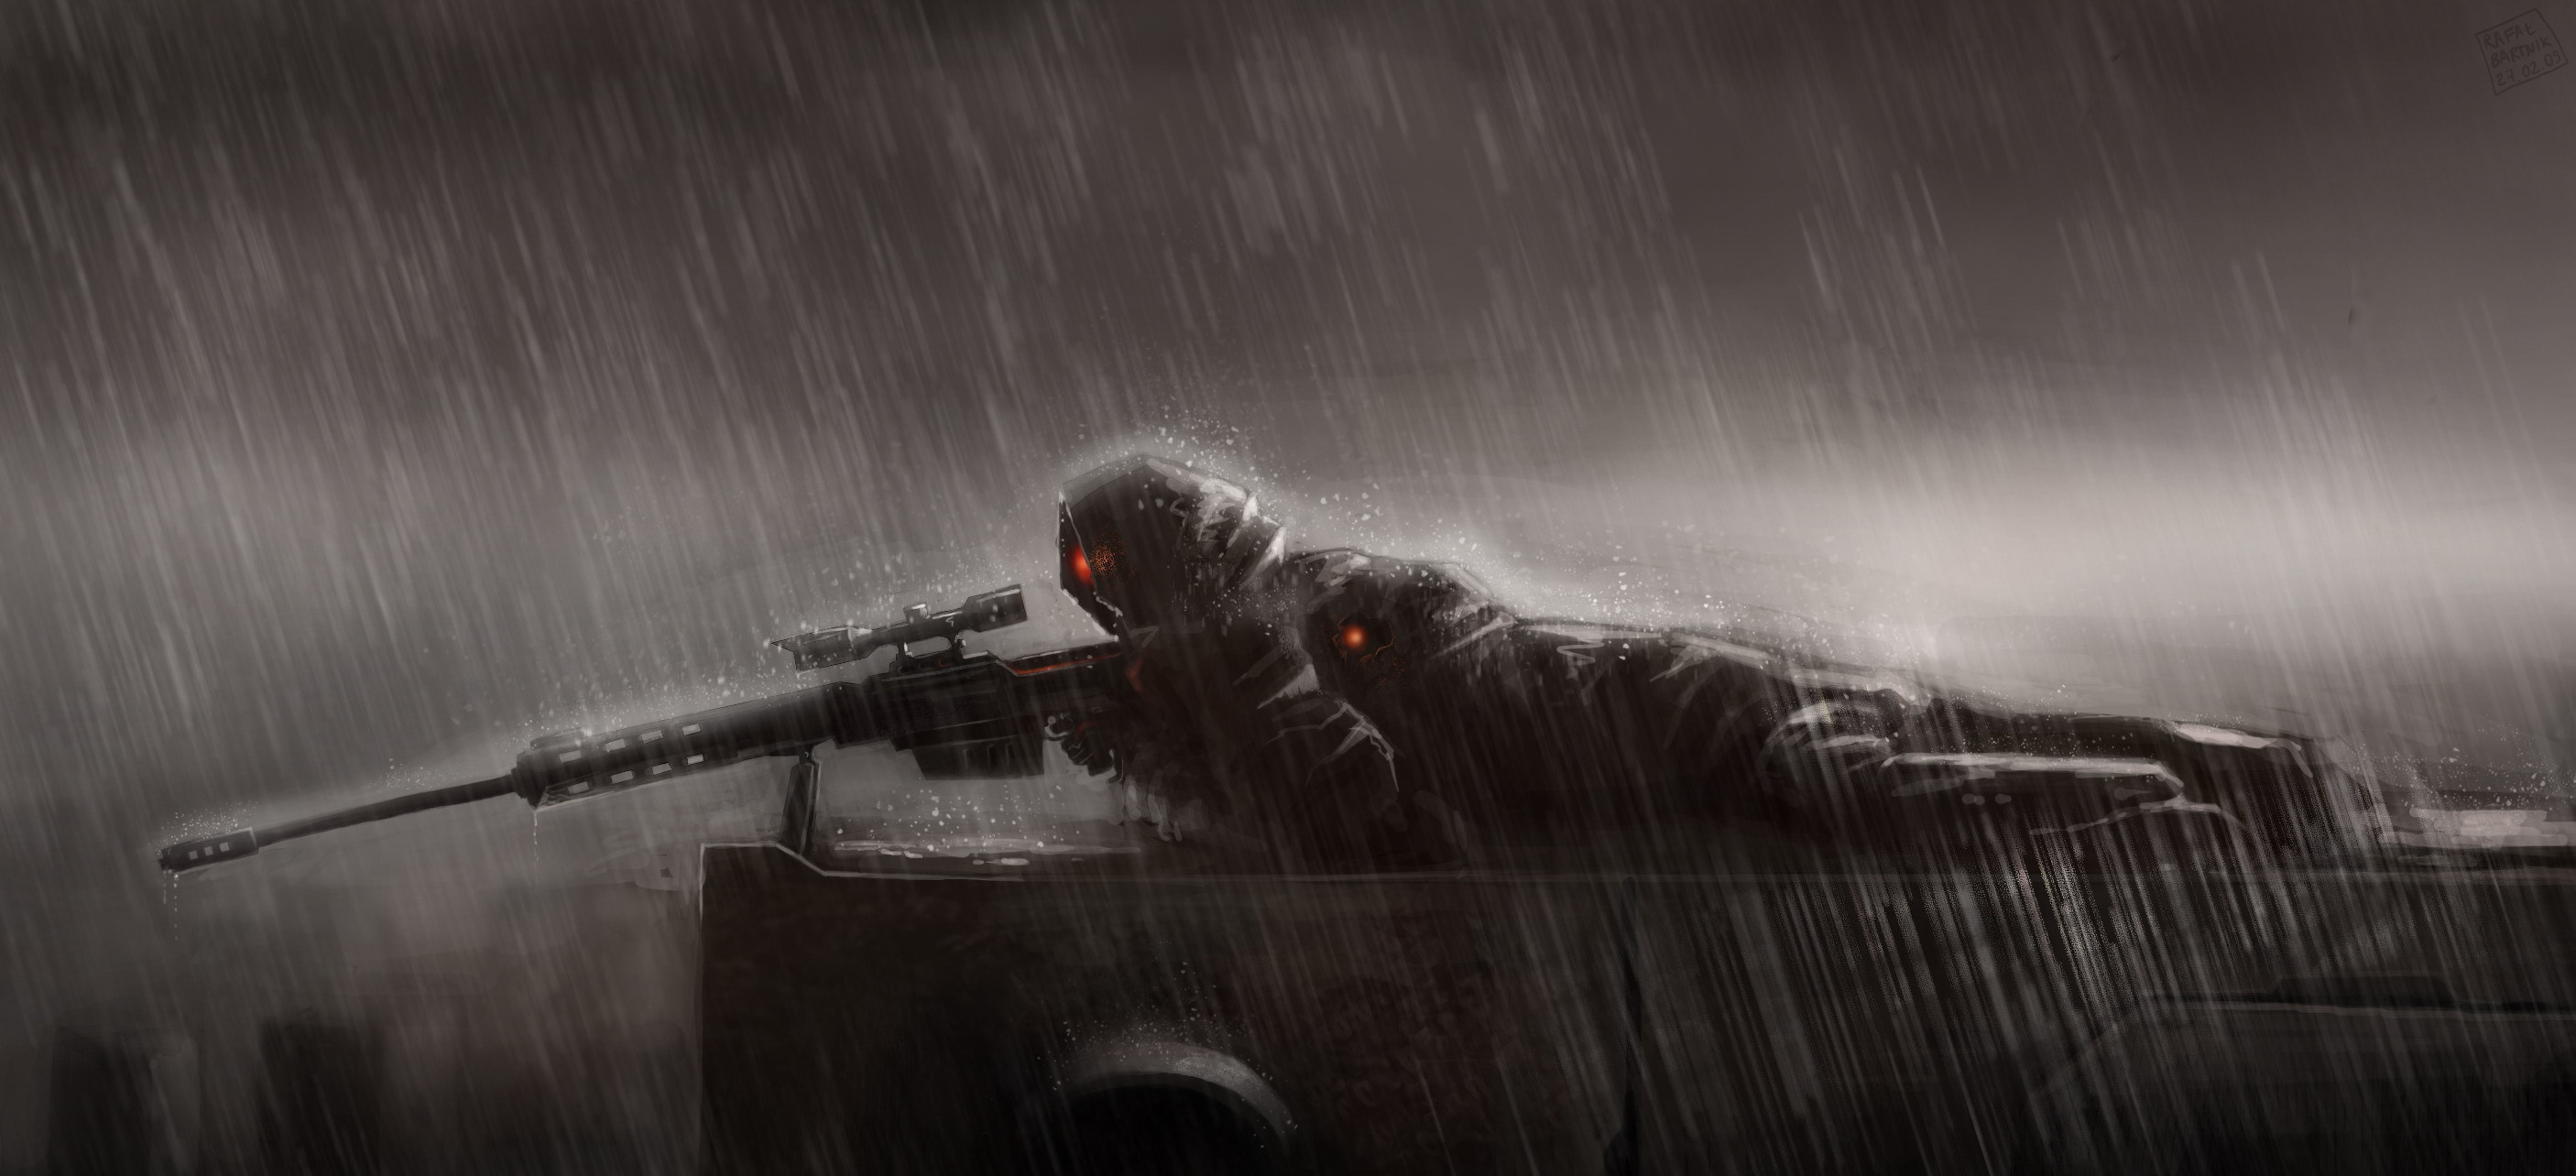 sniper rain sniper lies position rain sniper rifle wallpaper 2812x1284